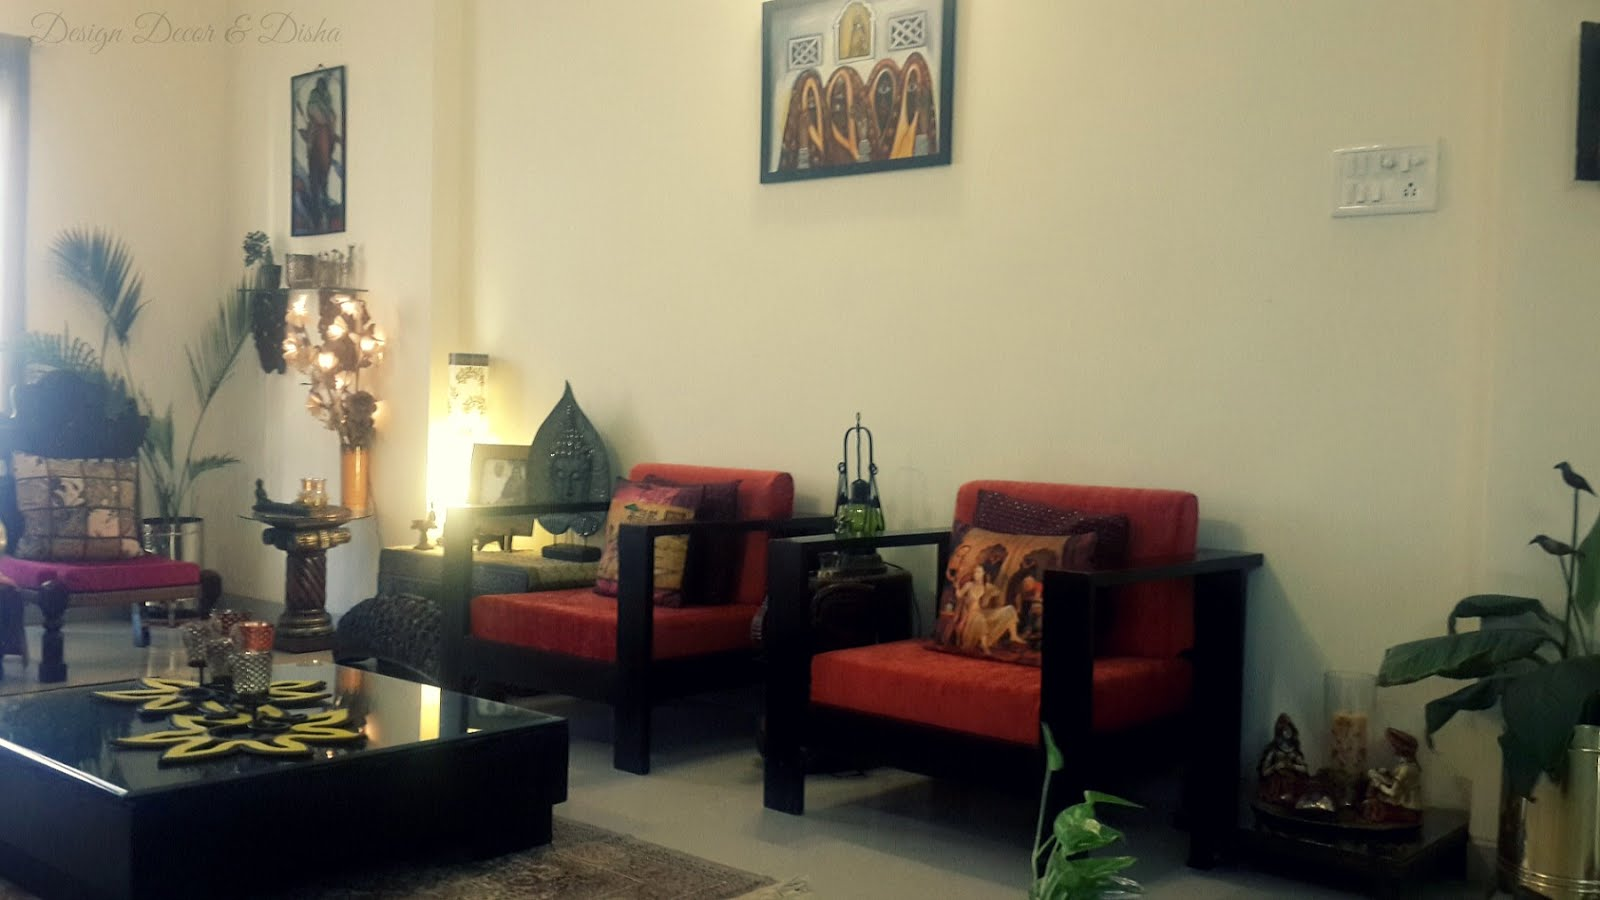 Design decor disha an indian design decor blog home - Home decor apartment image ...